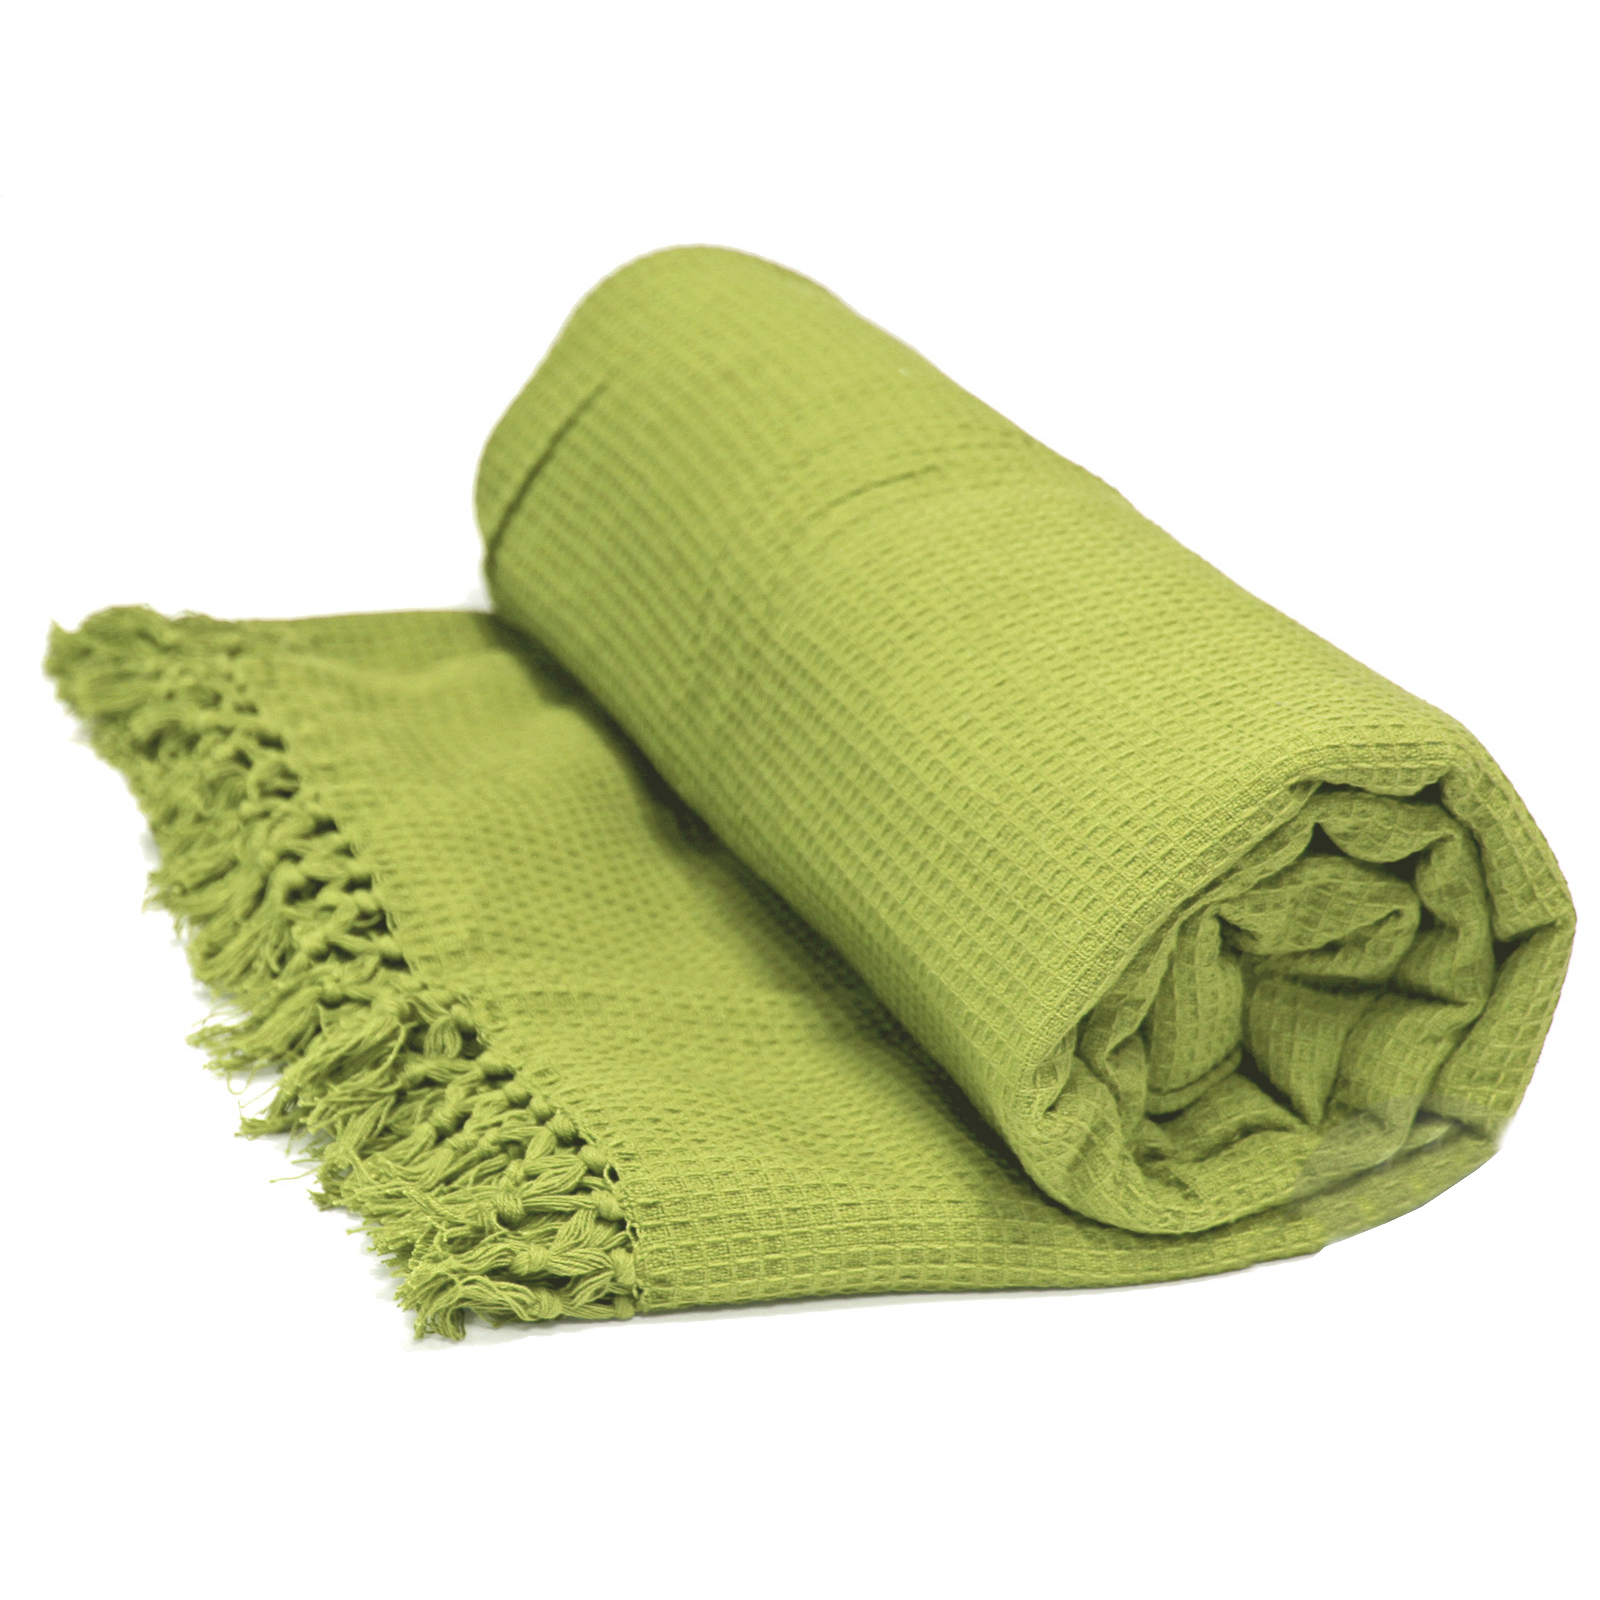 honeycomb  cotton throws extra large luxury thermal throw over  - honeycombcottonthrowsextralargeluxurythermal